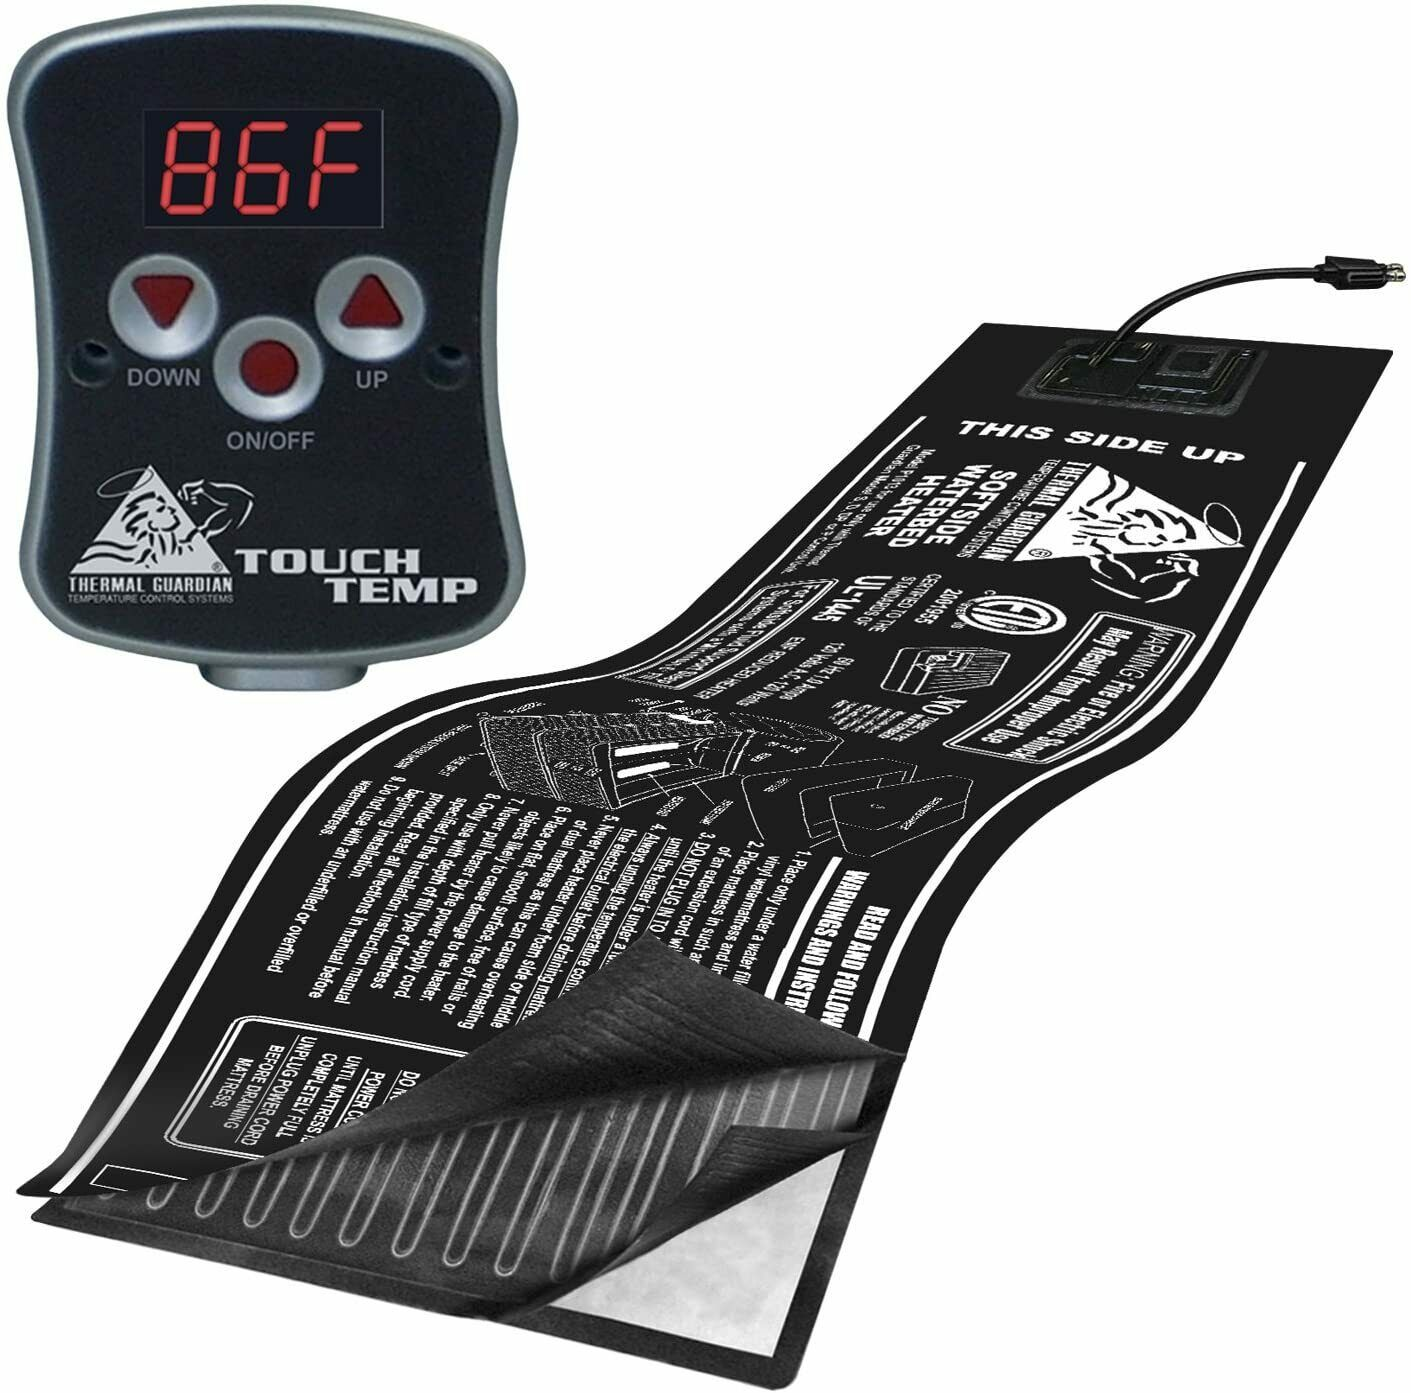 NEW ~ INNOMAX Thermal Guardian Touch Temp Soft Side Waterbed